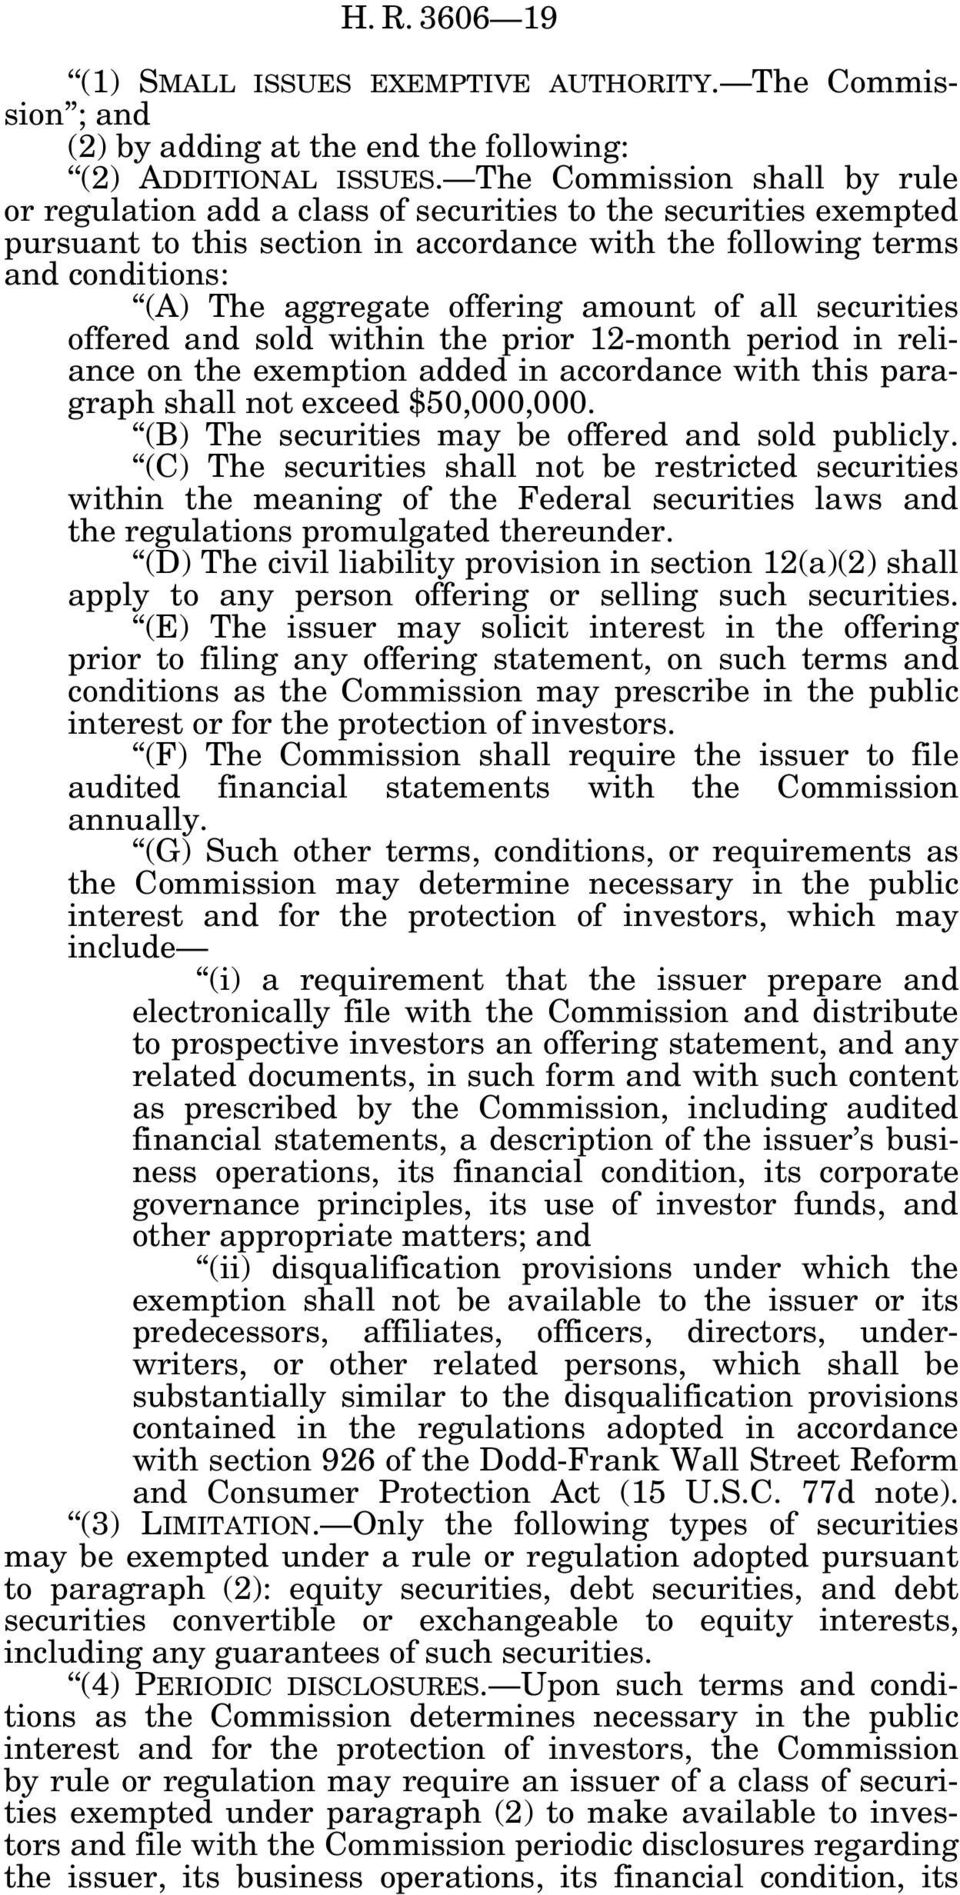 offering amount of all securities offered and sold within the prior 12-month period in reliance on the exemption added in accordance with this paragraph shall not exceed $50,000,000.